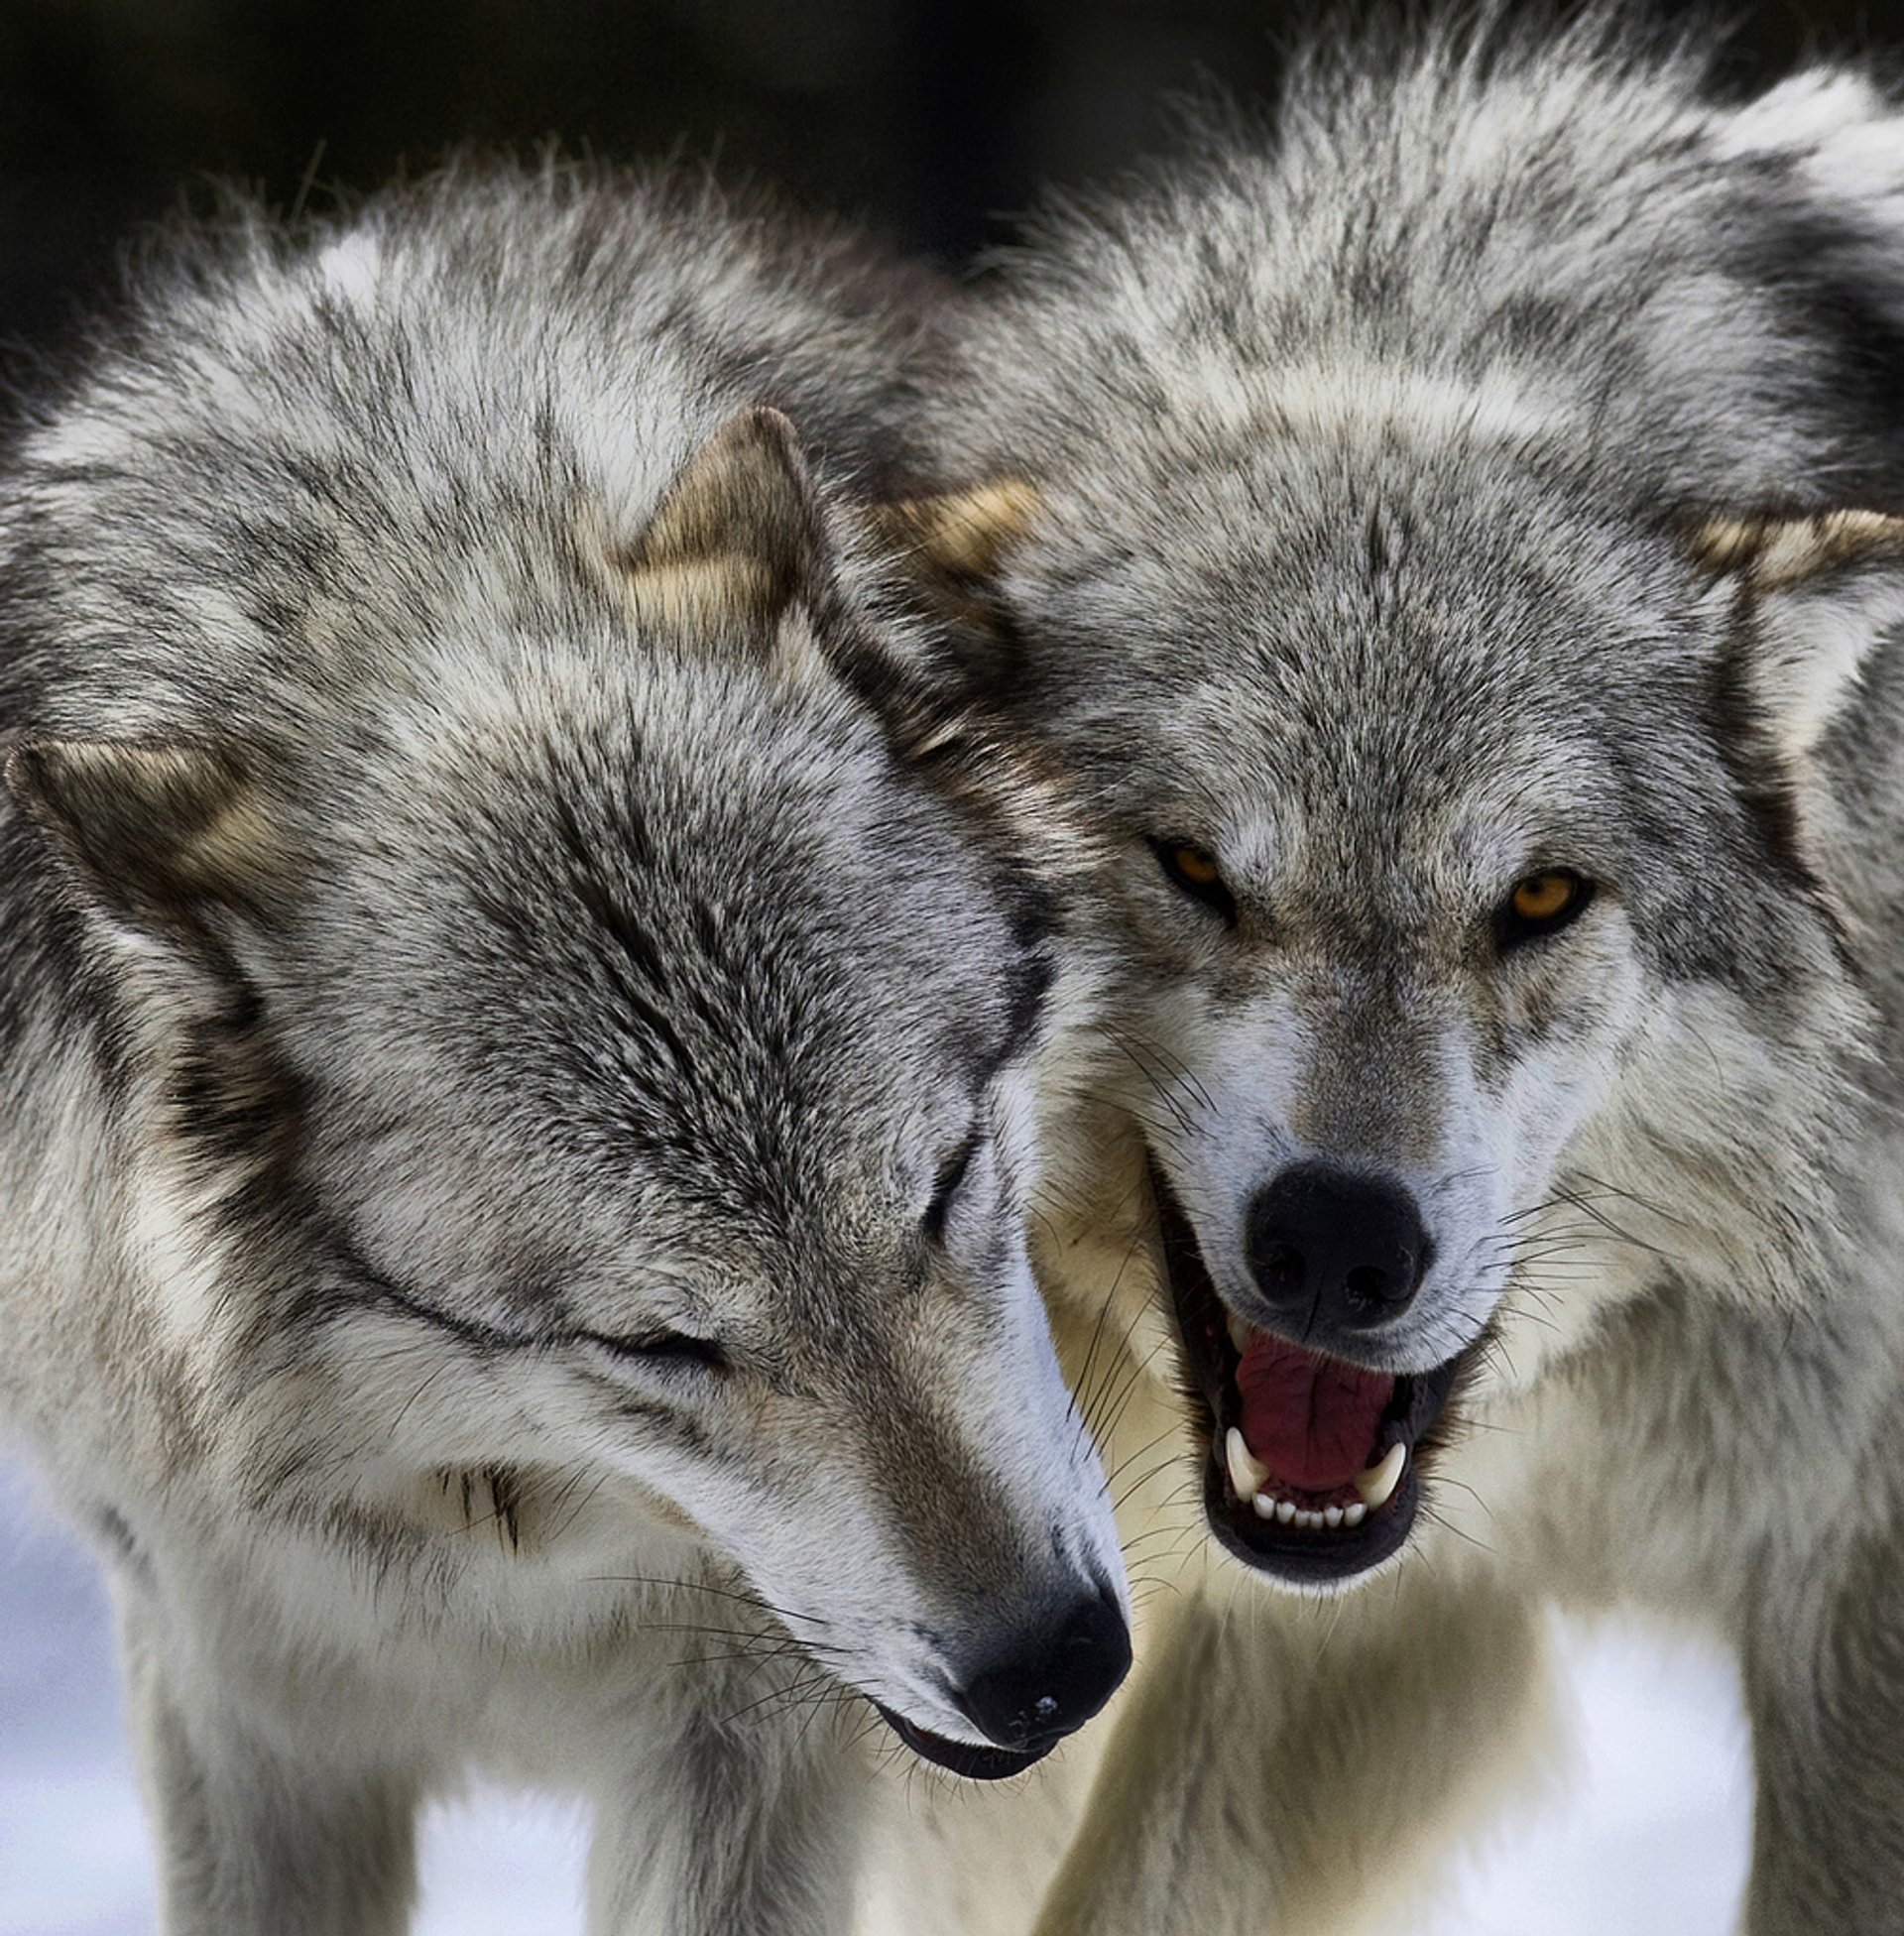 Best time for Wolves in Yellowstone National Park